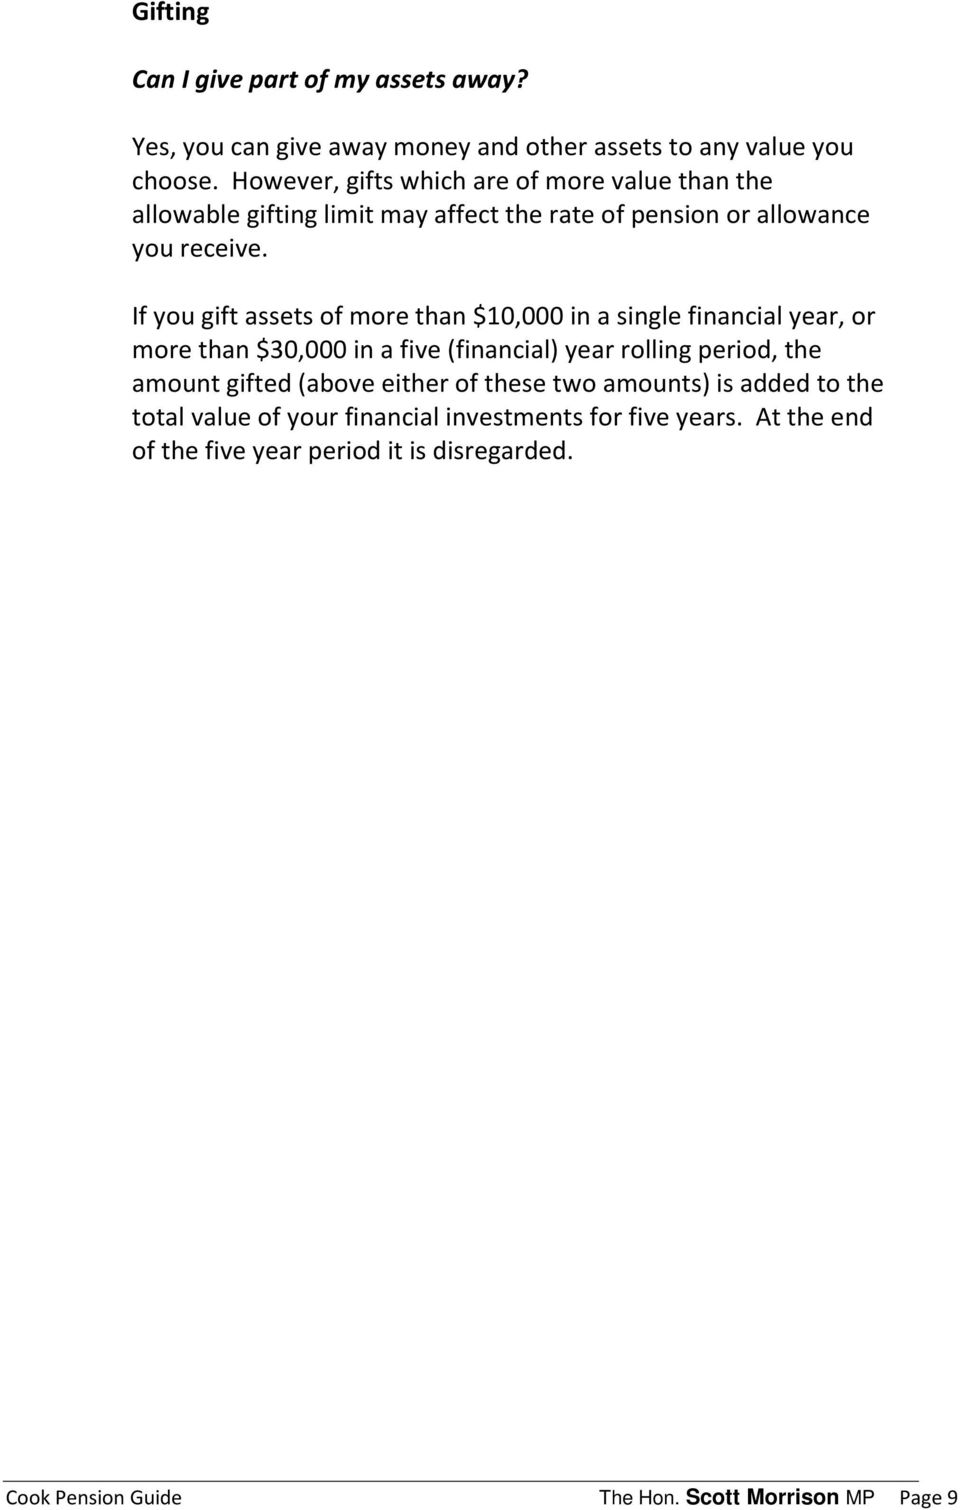 If you gift assets of more than $10,000 in a single financial year, or more than $30,000 in a five (financial) year rolling period, the amount gifted